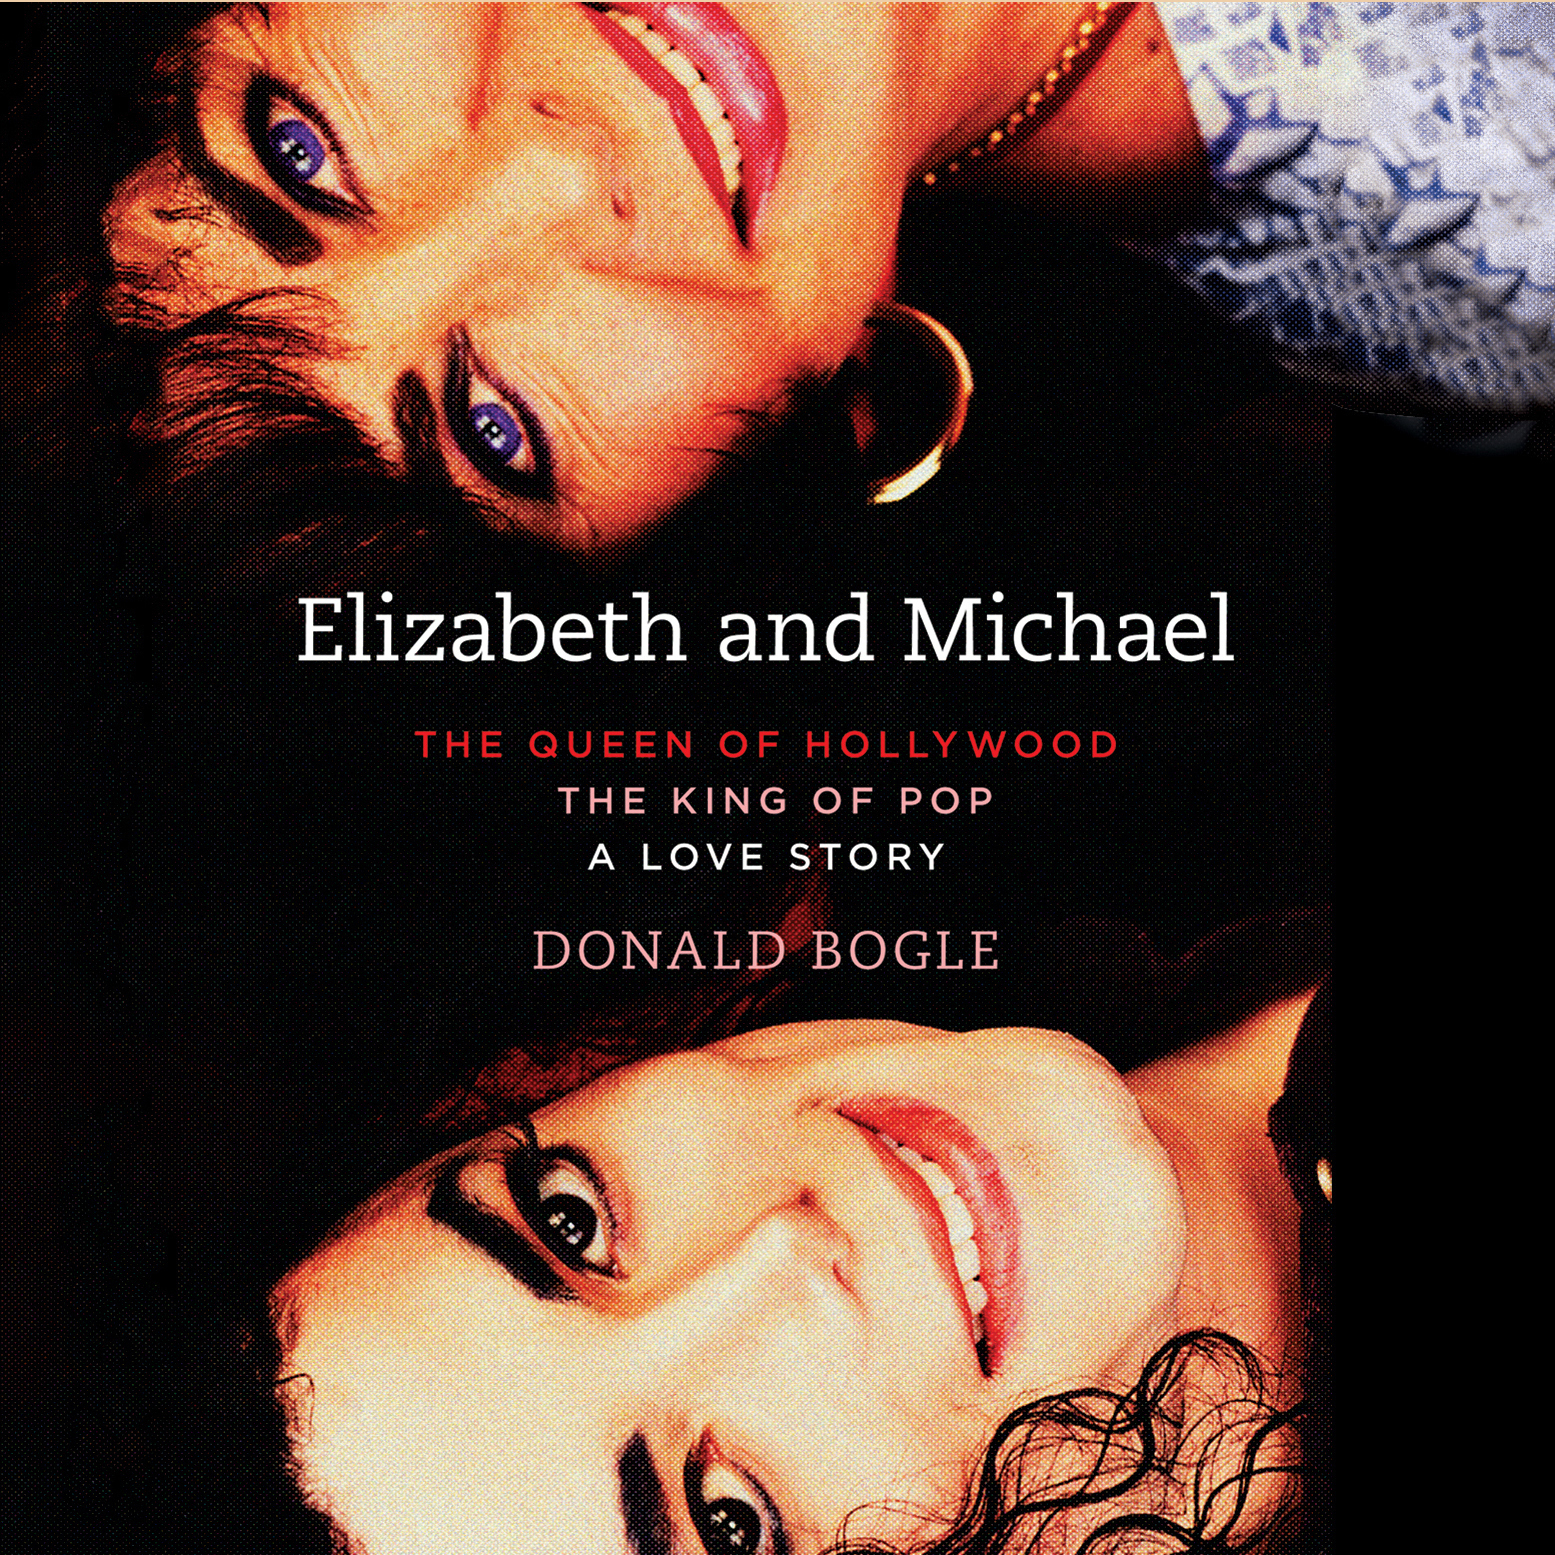 Printable Elizabeth and Michael: The Queen of Hollywood and The King of Pop - A Love Story Audiobook Cover Art